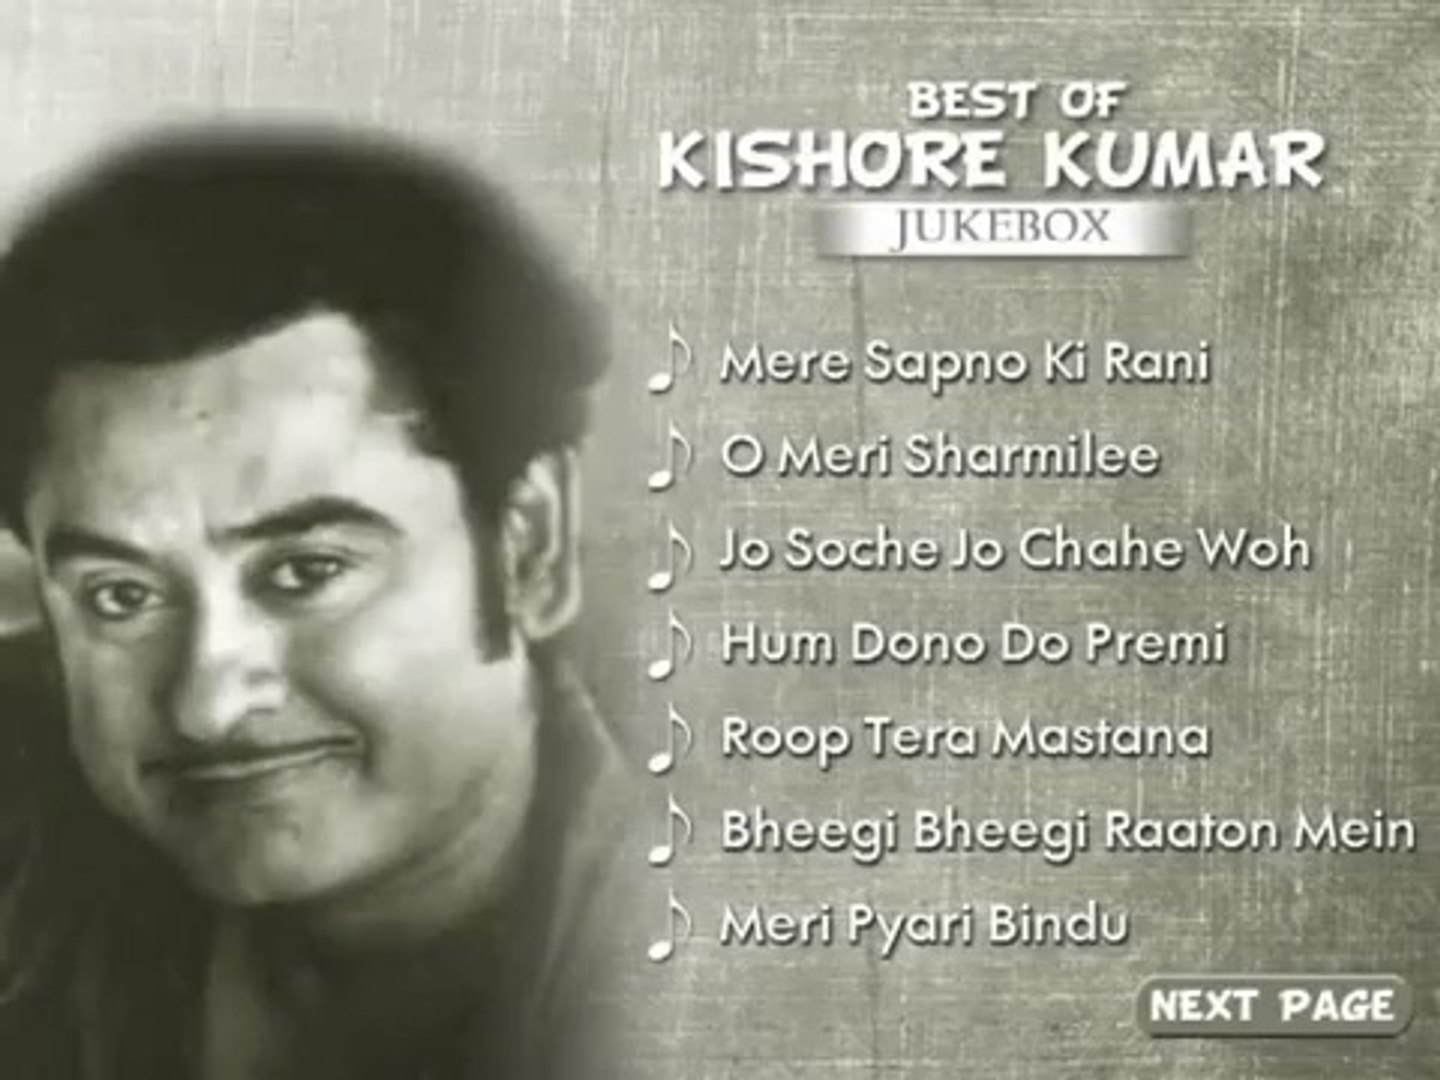 Kishore Kumar Superhit Songs Jukebox Evergreen Hindi Old Songs Video Dailymotion Legendary icon kishore kumar was one of the most versatile playback singers and wore many hats including that of an actor, composer, lyricist and screenwriters. kishore kumar superhit songs jukebox evergreen hindi old songs